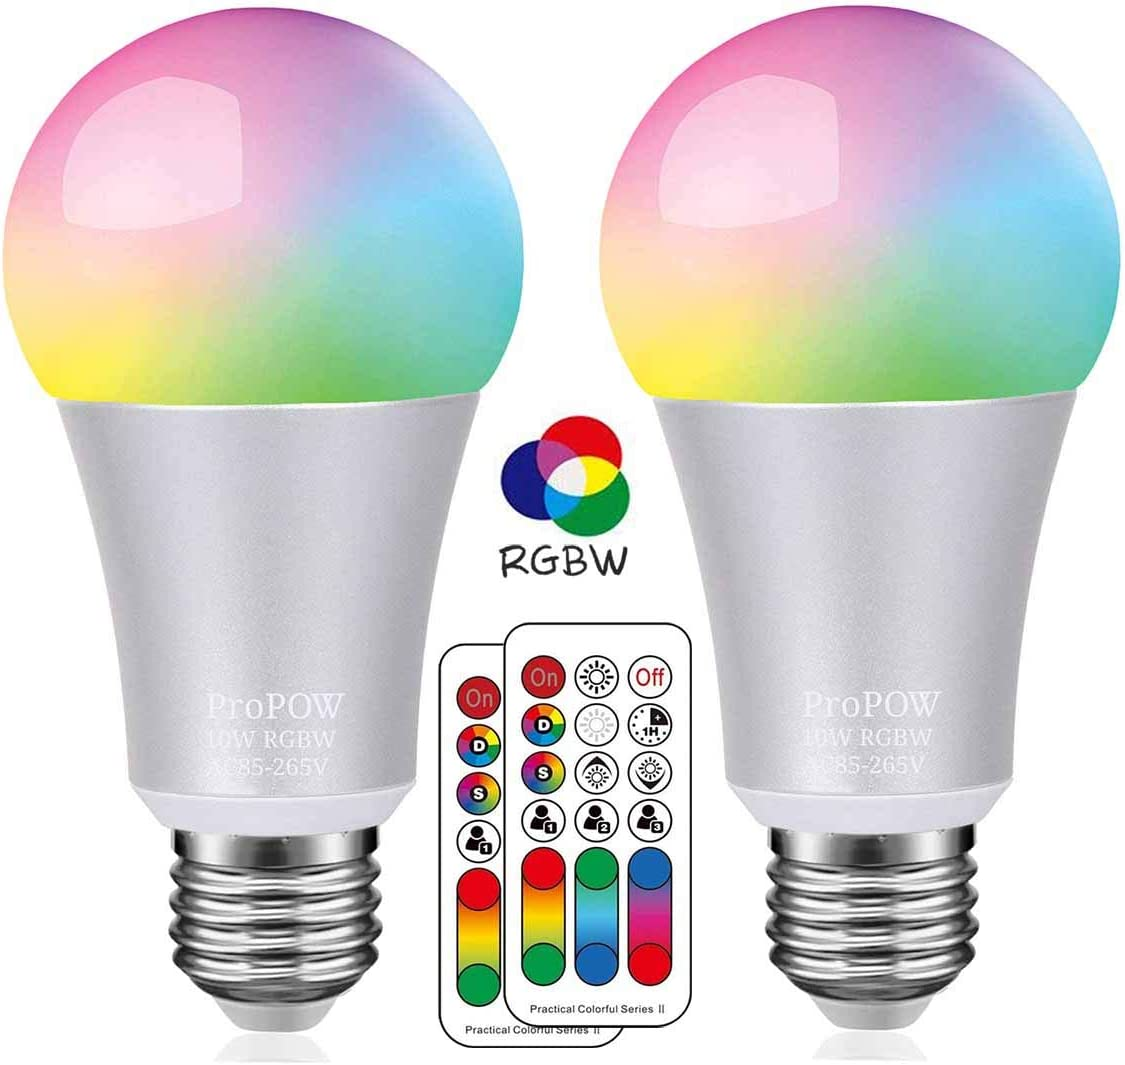 Color Changing Light Bulb,ProPOW 10W RGB Color LED Light Bulbs with IR Remote Control A19 E26 LED Night Light Bulbs Mood Light Bulb for Home Decor,Party RGB+Soft White,Dimmable,1-Pack